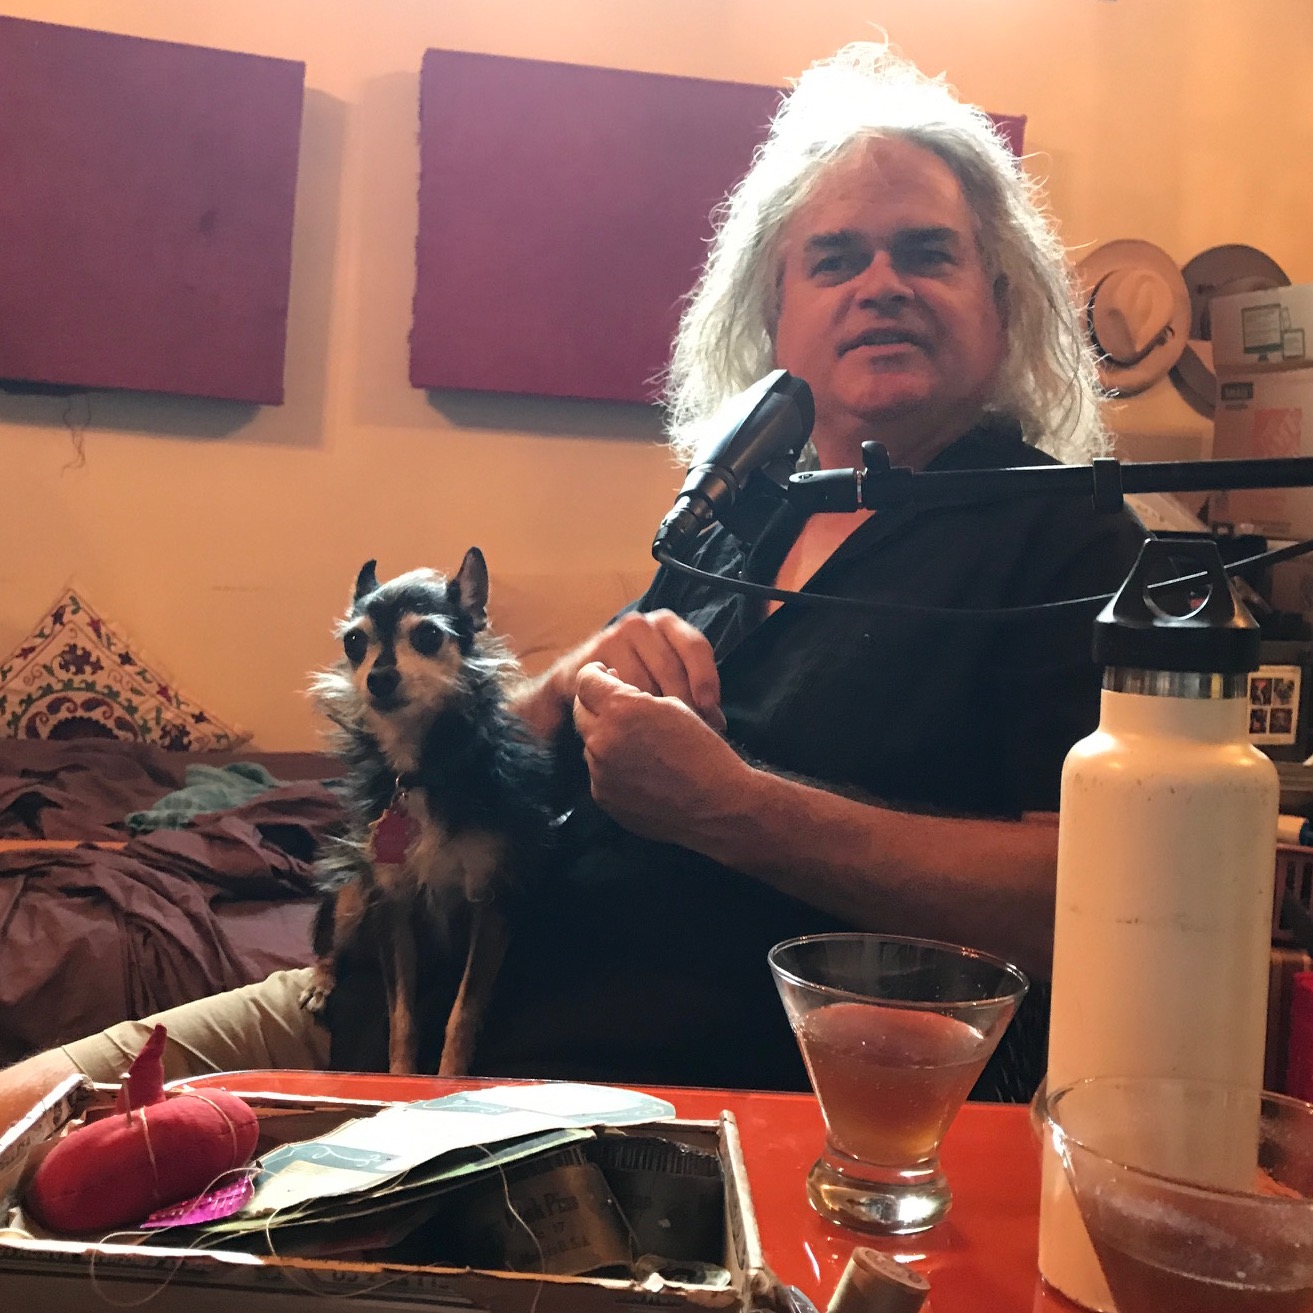 Here's Jeff in his studio/home. Note the sewing kit and Eye Opener cocktail as featured in the podcast. Lemmy the Dog didn't make the cut, unfortunately (too bitey).